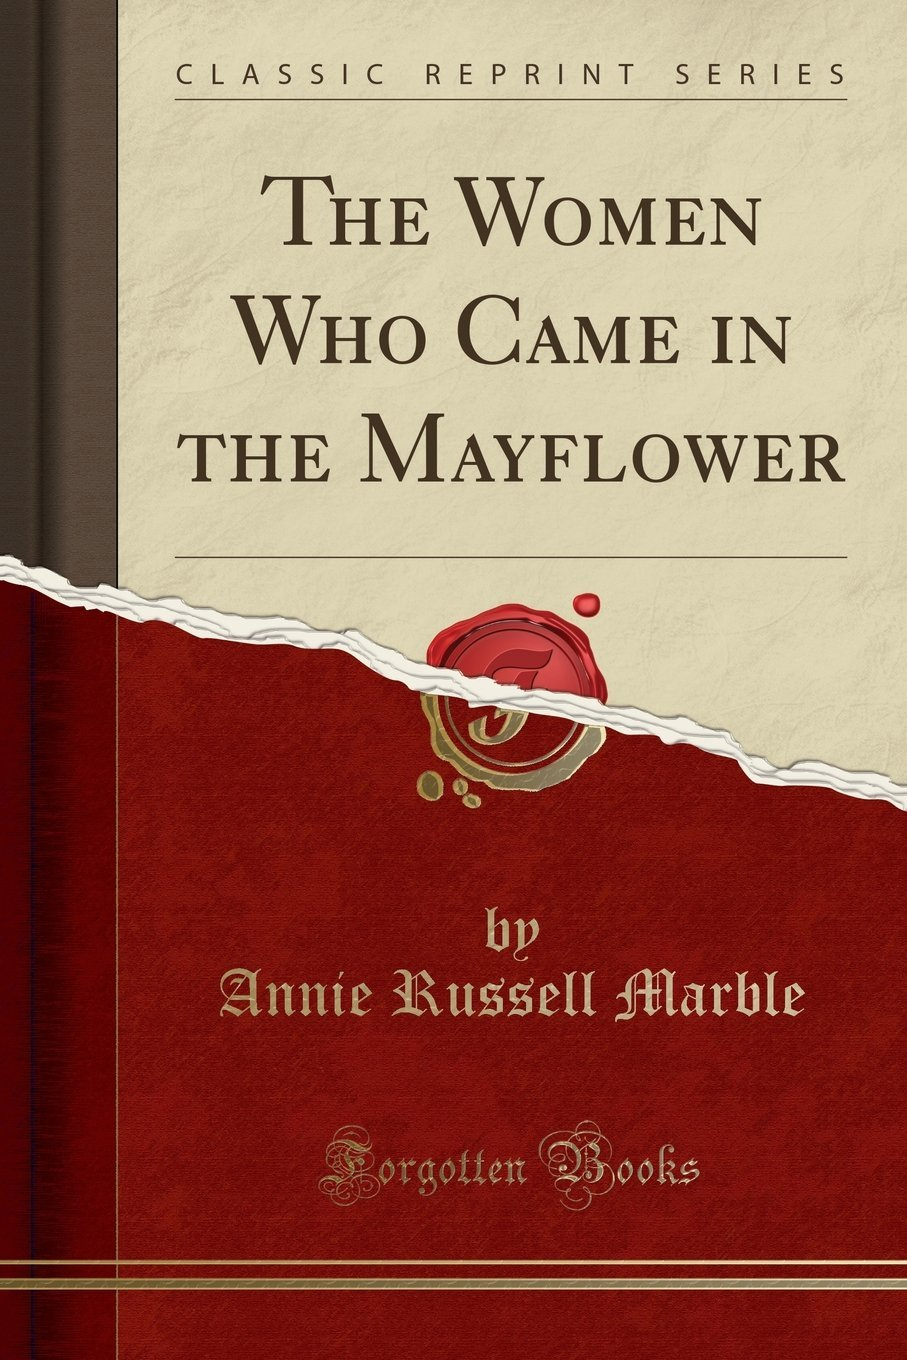 The Women Who Came in the Mayflower (Classic Reprint): Annie Russell  Marble: 9780265146682: Amazon.com: Books